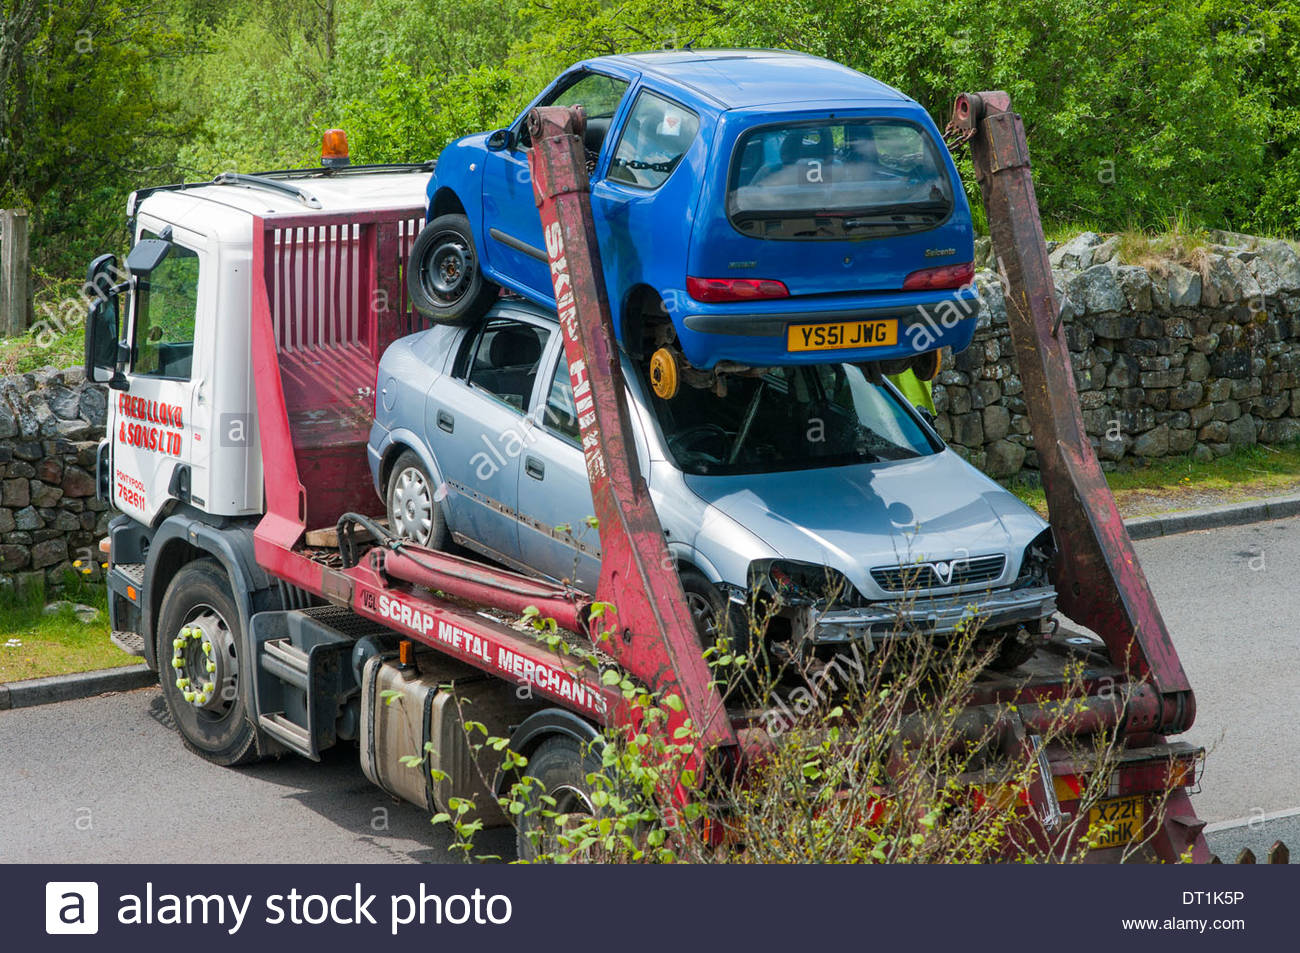 Car scrap uk stock photos car scrap uk stock images alamy for How to tell if garbage disposal motor is burned out